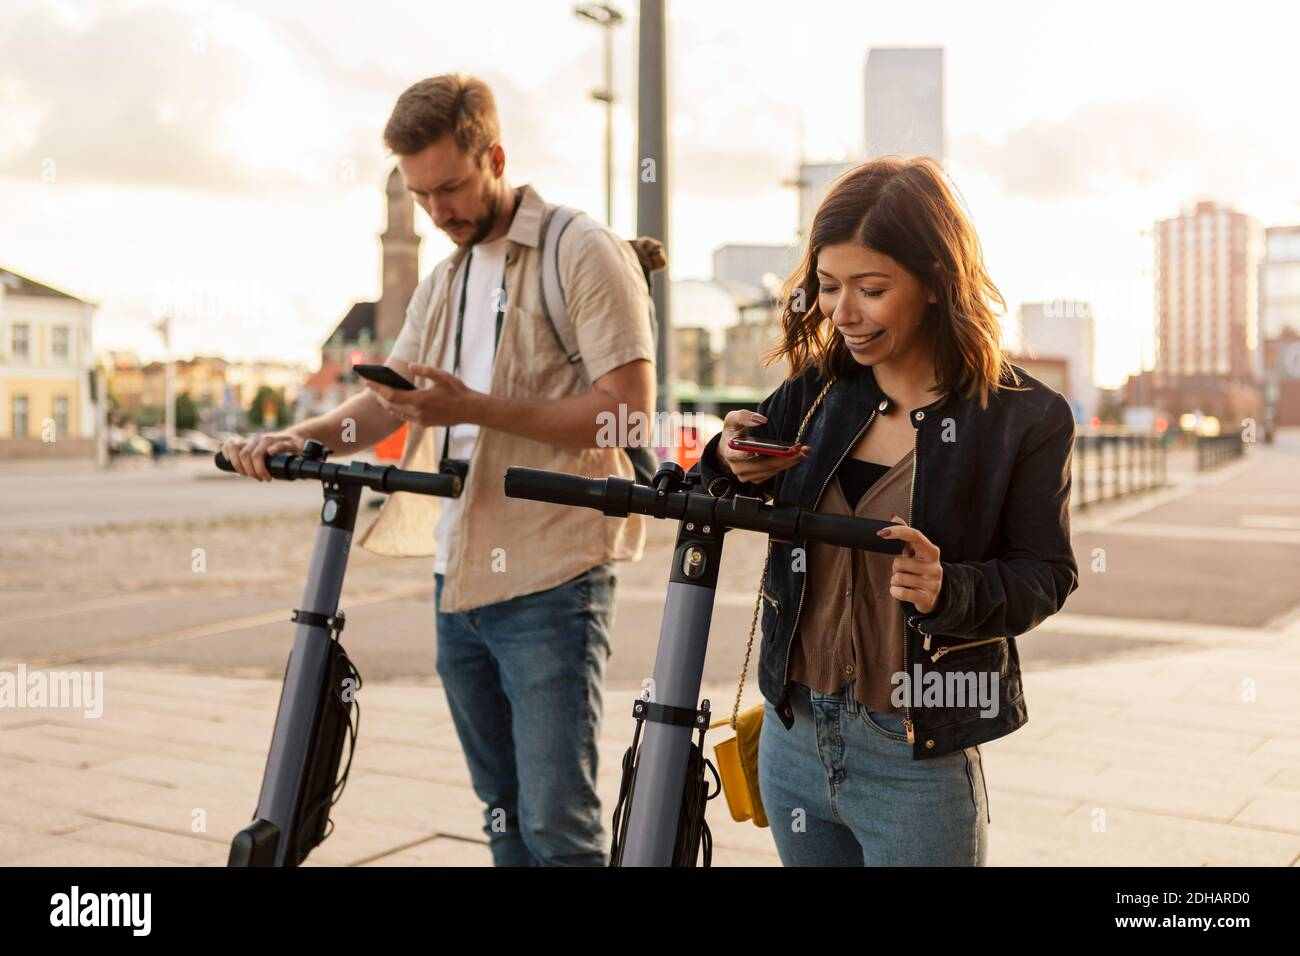 Male and female commuters scanning through mobile phone while unlocking electric push scooters in city Stock Photo